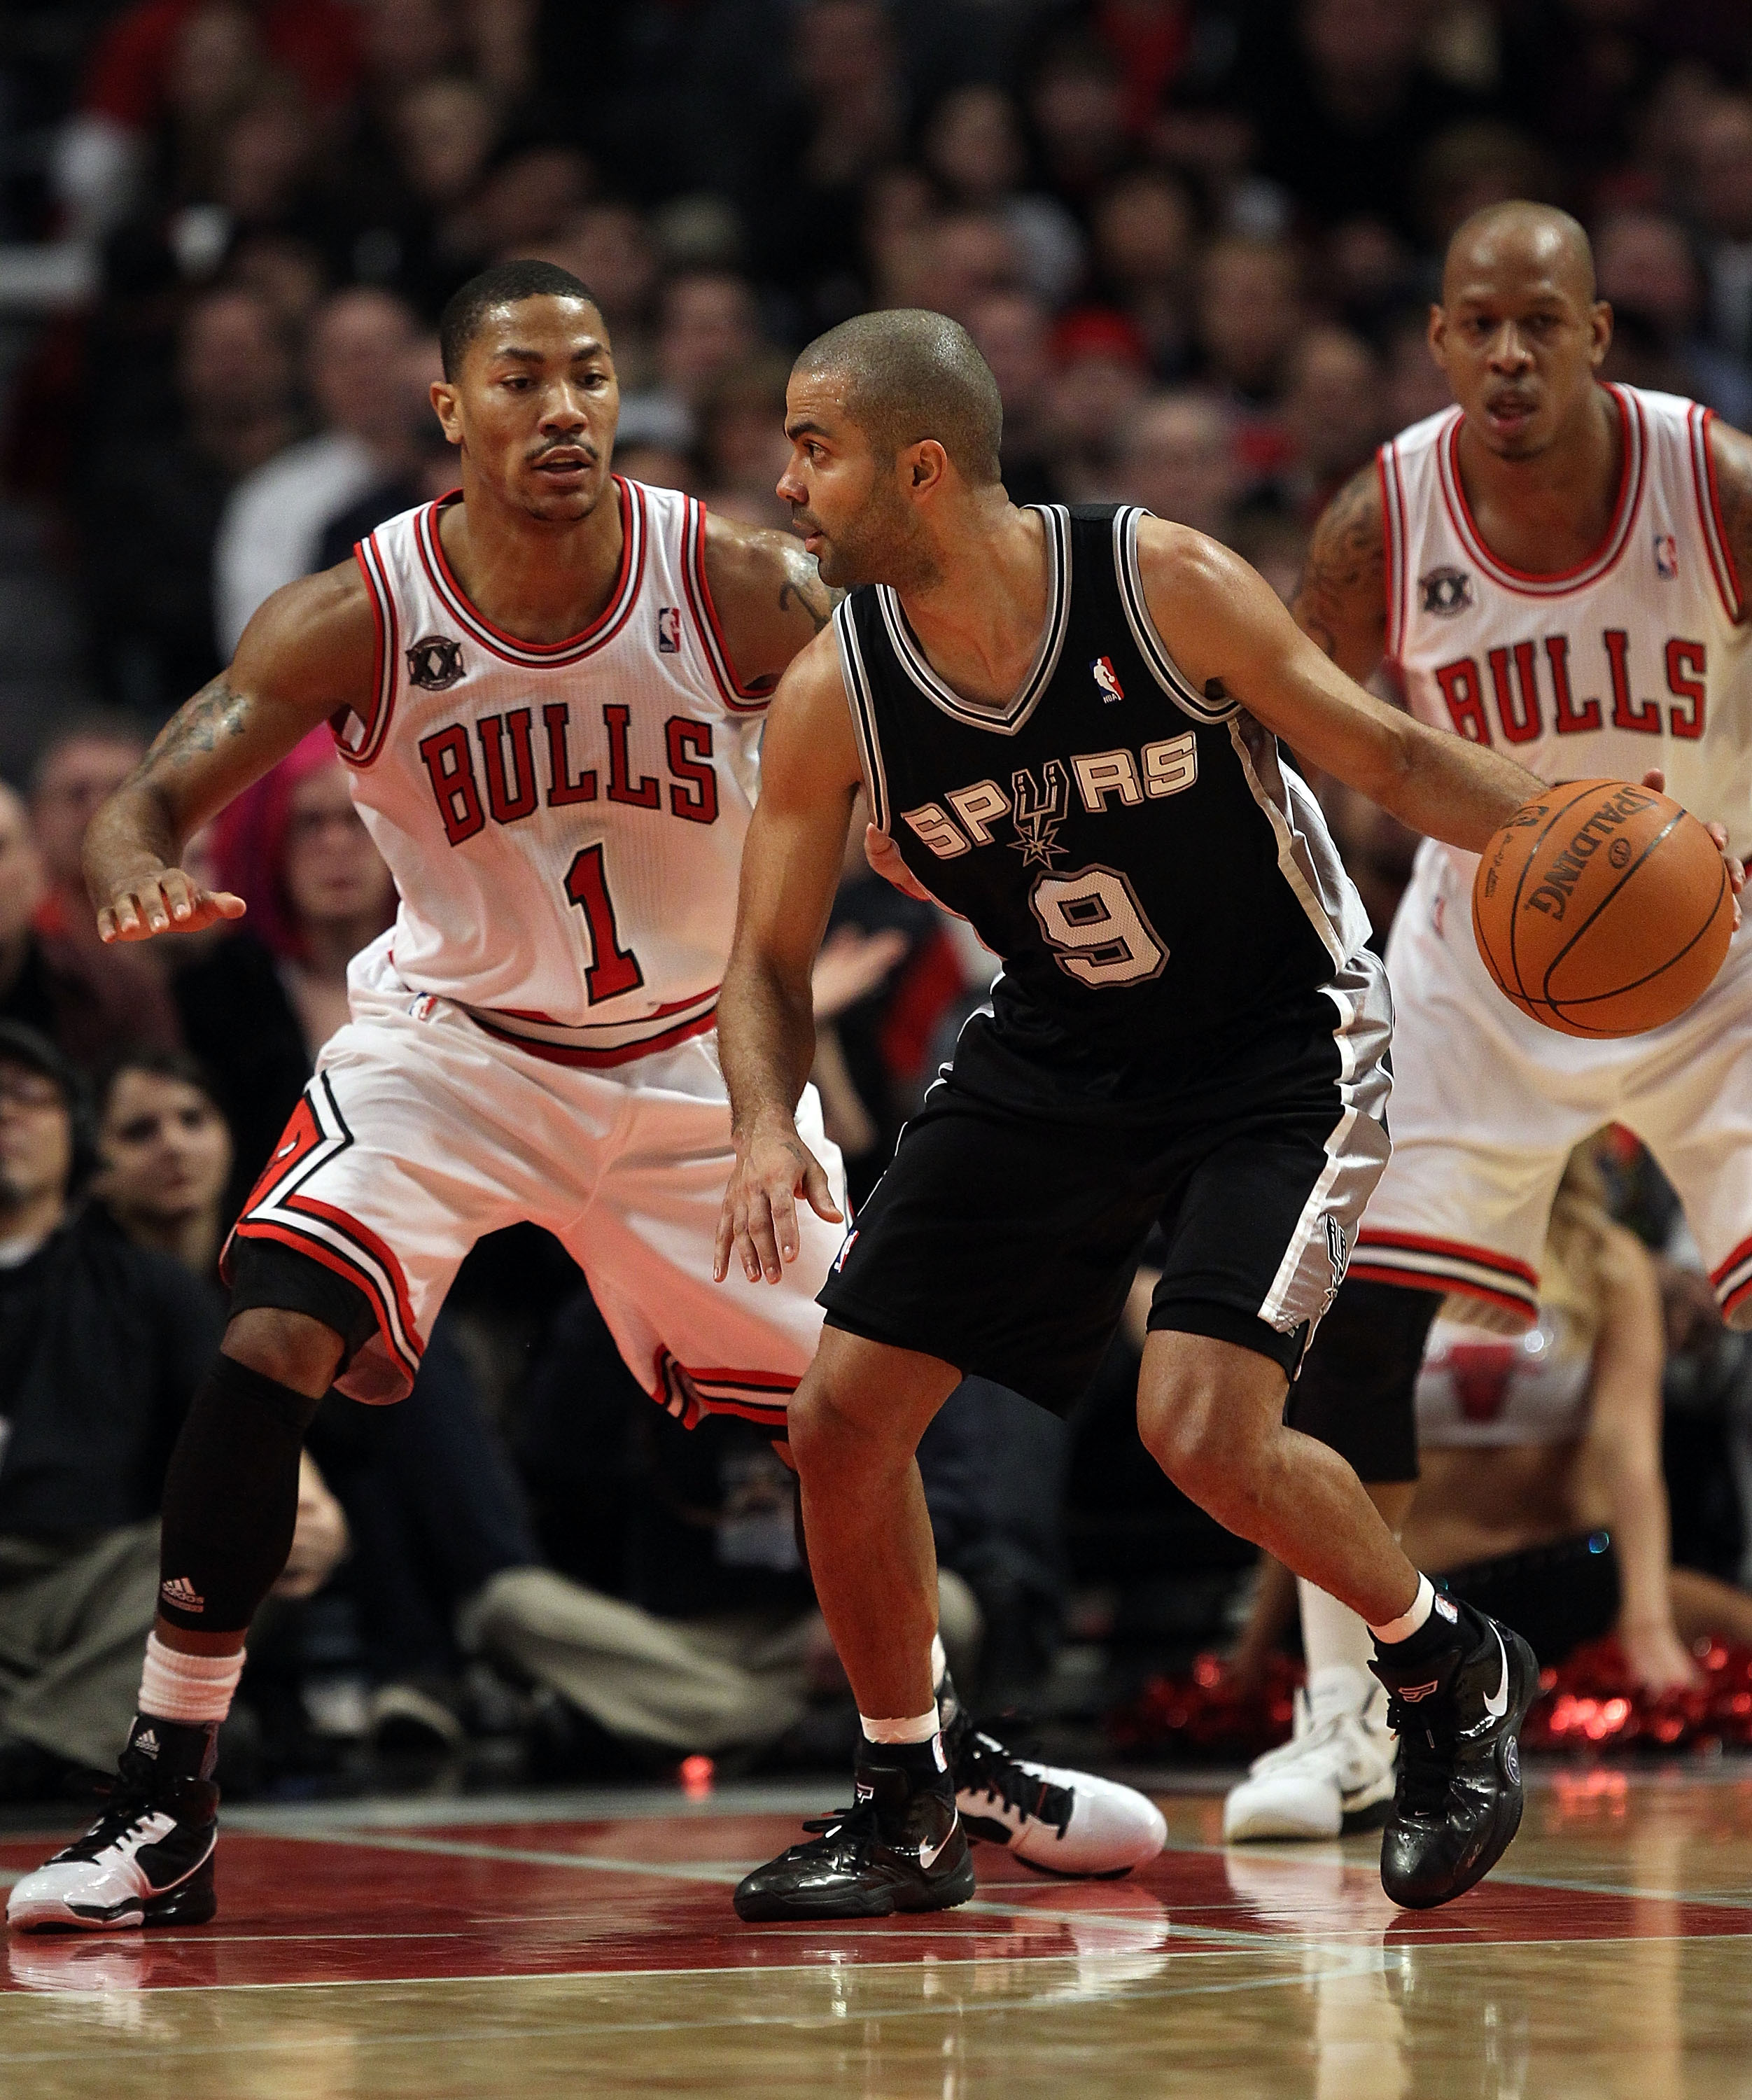 CHICAGO, IL - FEBRUARY 17: Tony Parker #9 of the San Antonio Spurs moves against Derrick Rose #1 of the Chicago Bulls at the United Center on February 17, 2011 in Chicago, Illinois. The Bulls defeated the Spurs 109-99. NOTE TO USER: User expressly acknowl